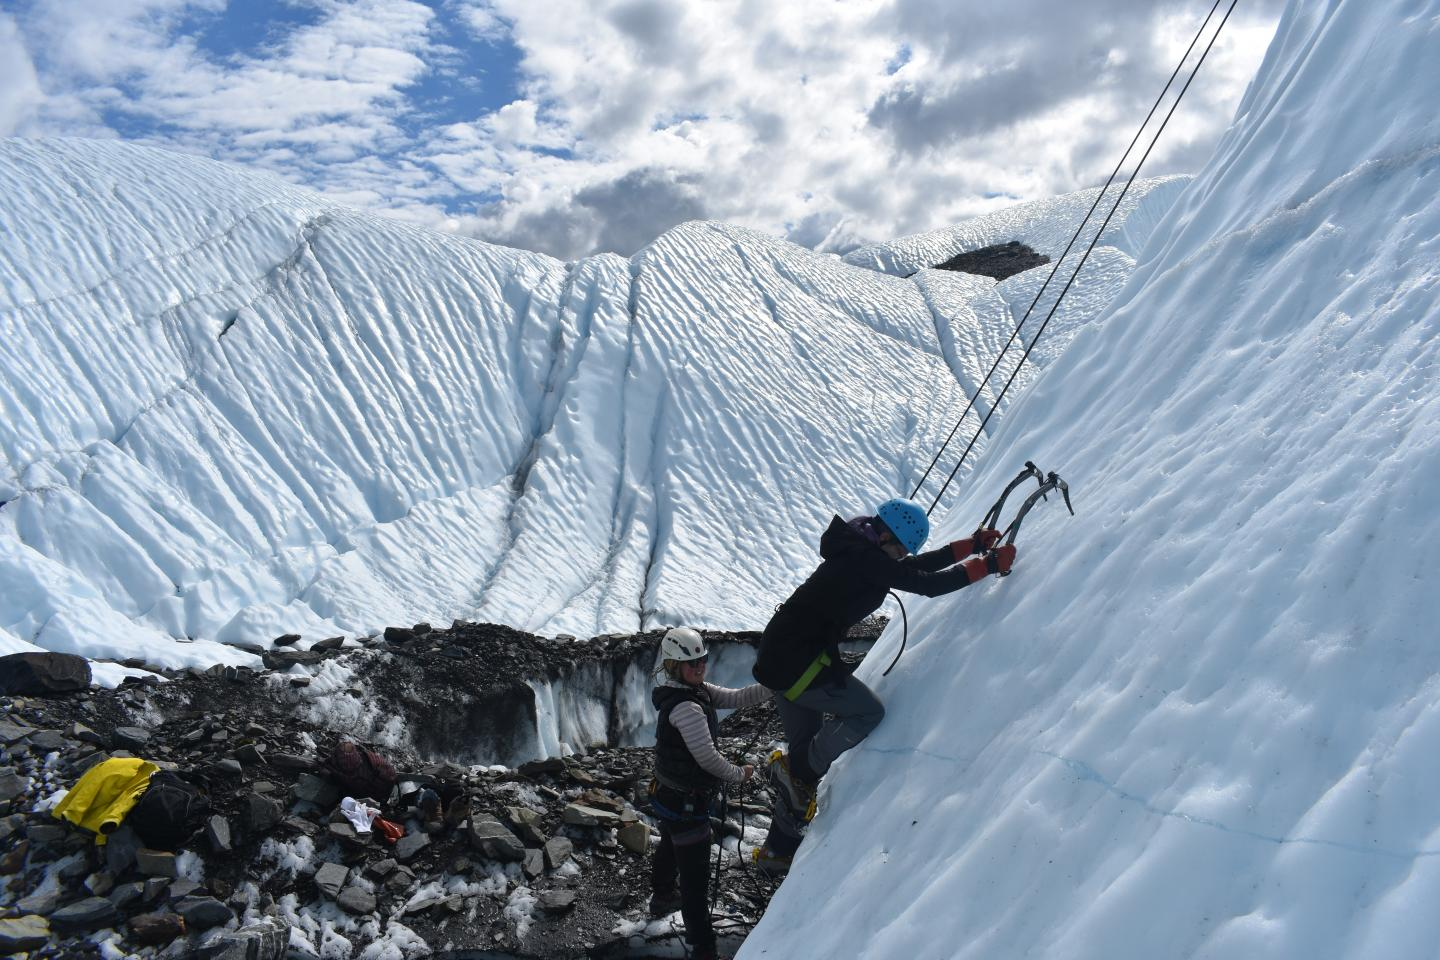 Teen goes ice climbing in Alaska on summer adventure and travel program.